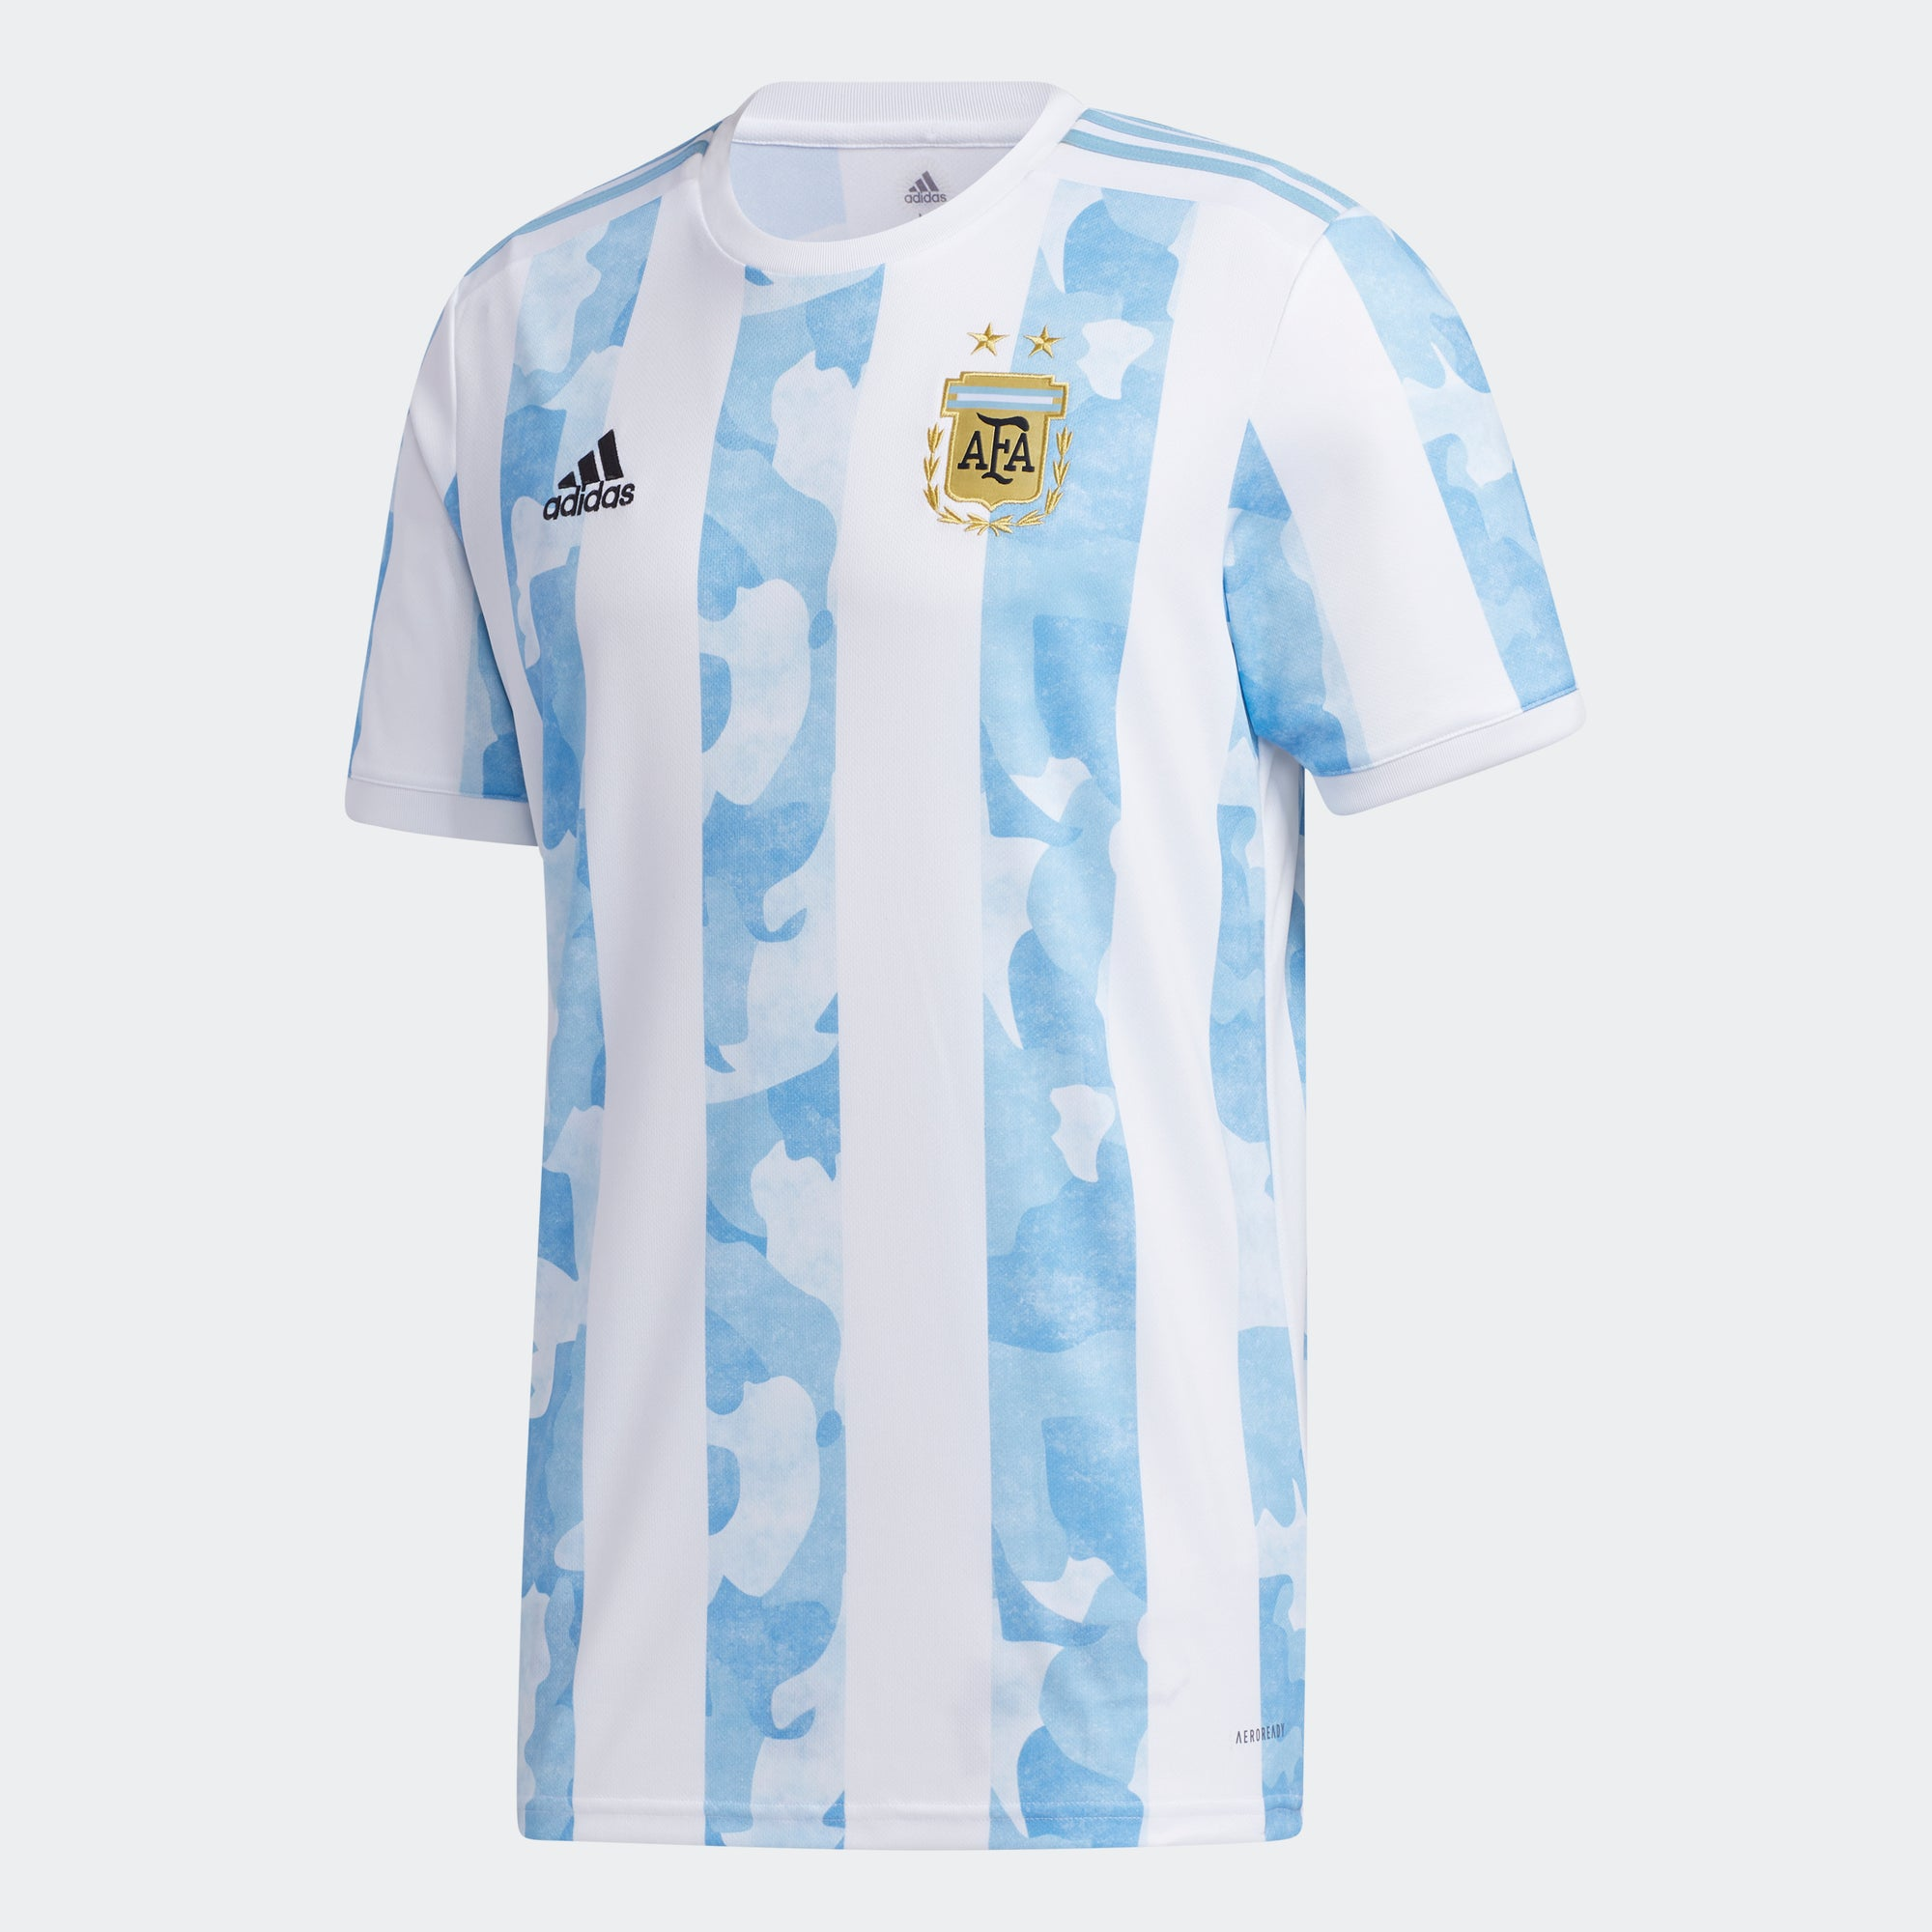 Argentina Home 2019/20 Jersey - White/Clear Blue